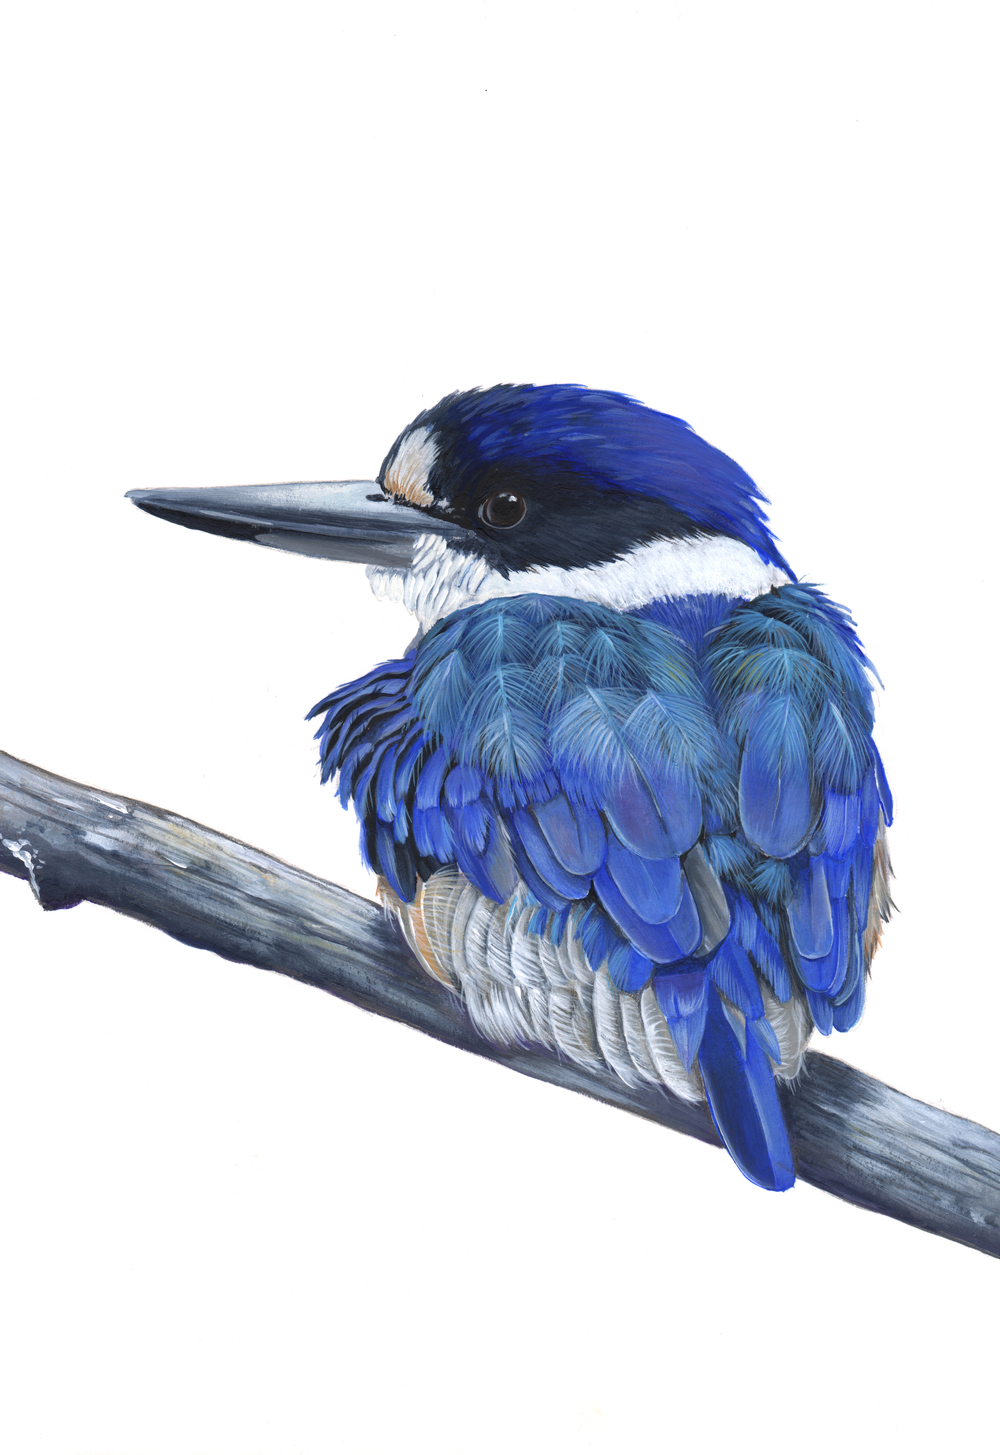 My little KIngfisher in acrylic paint.